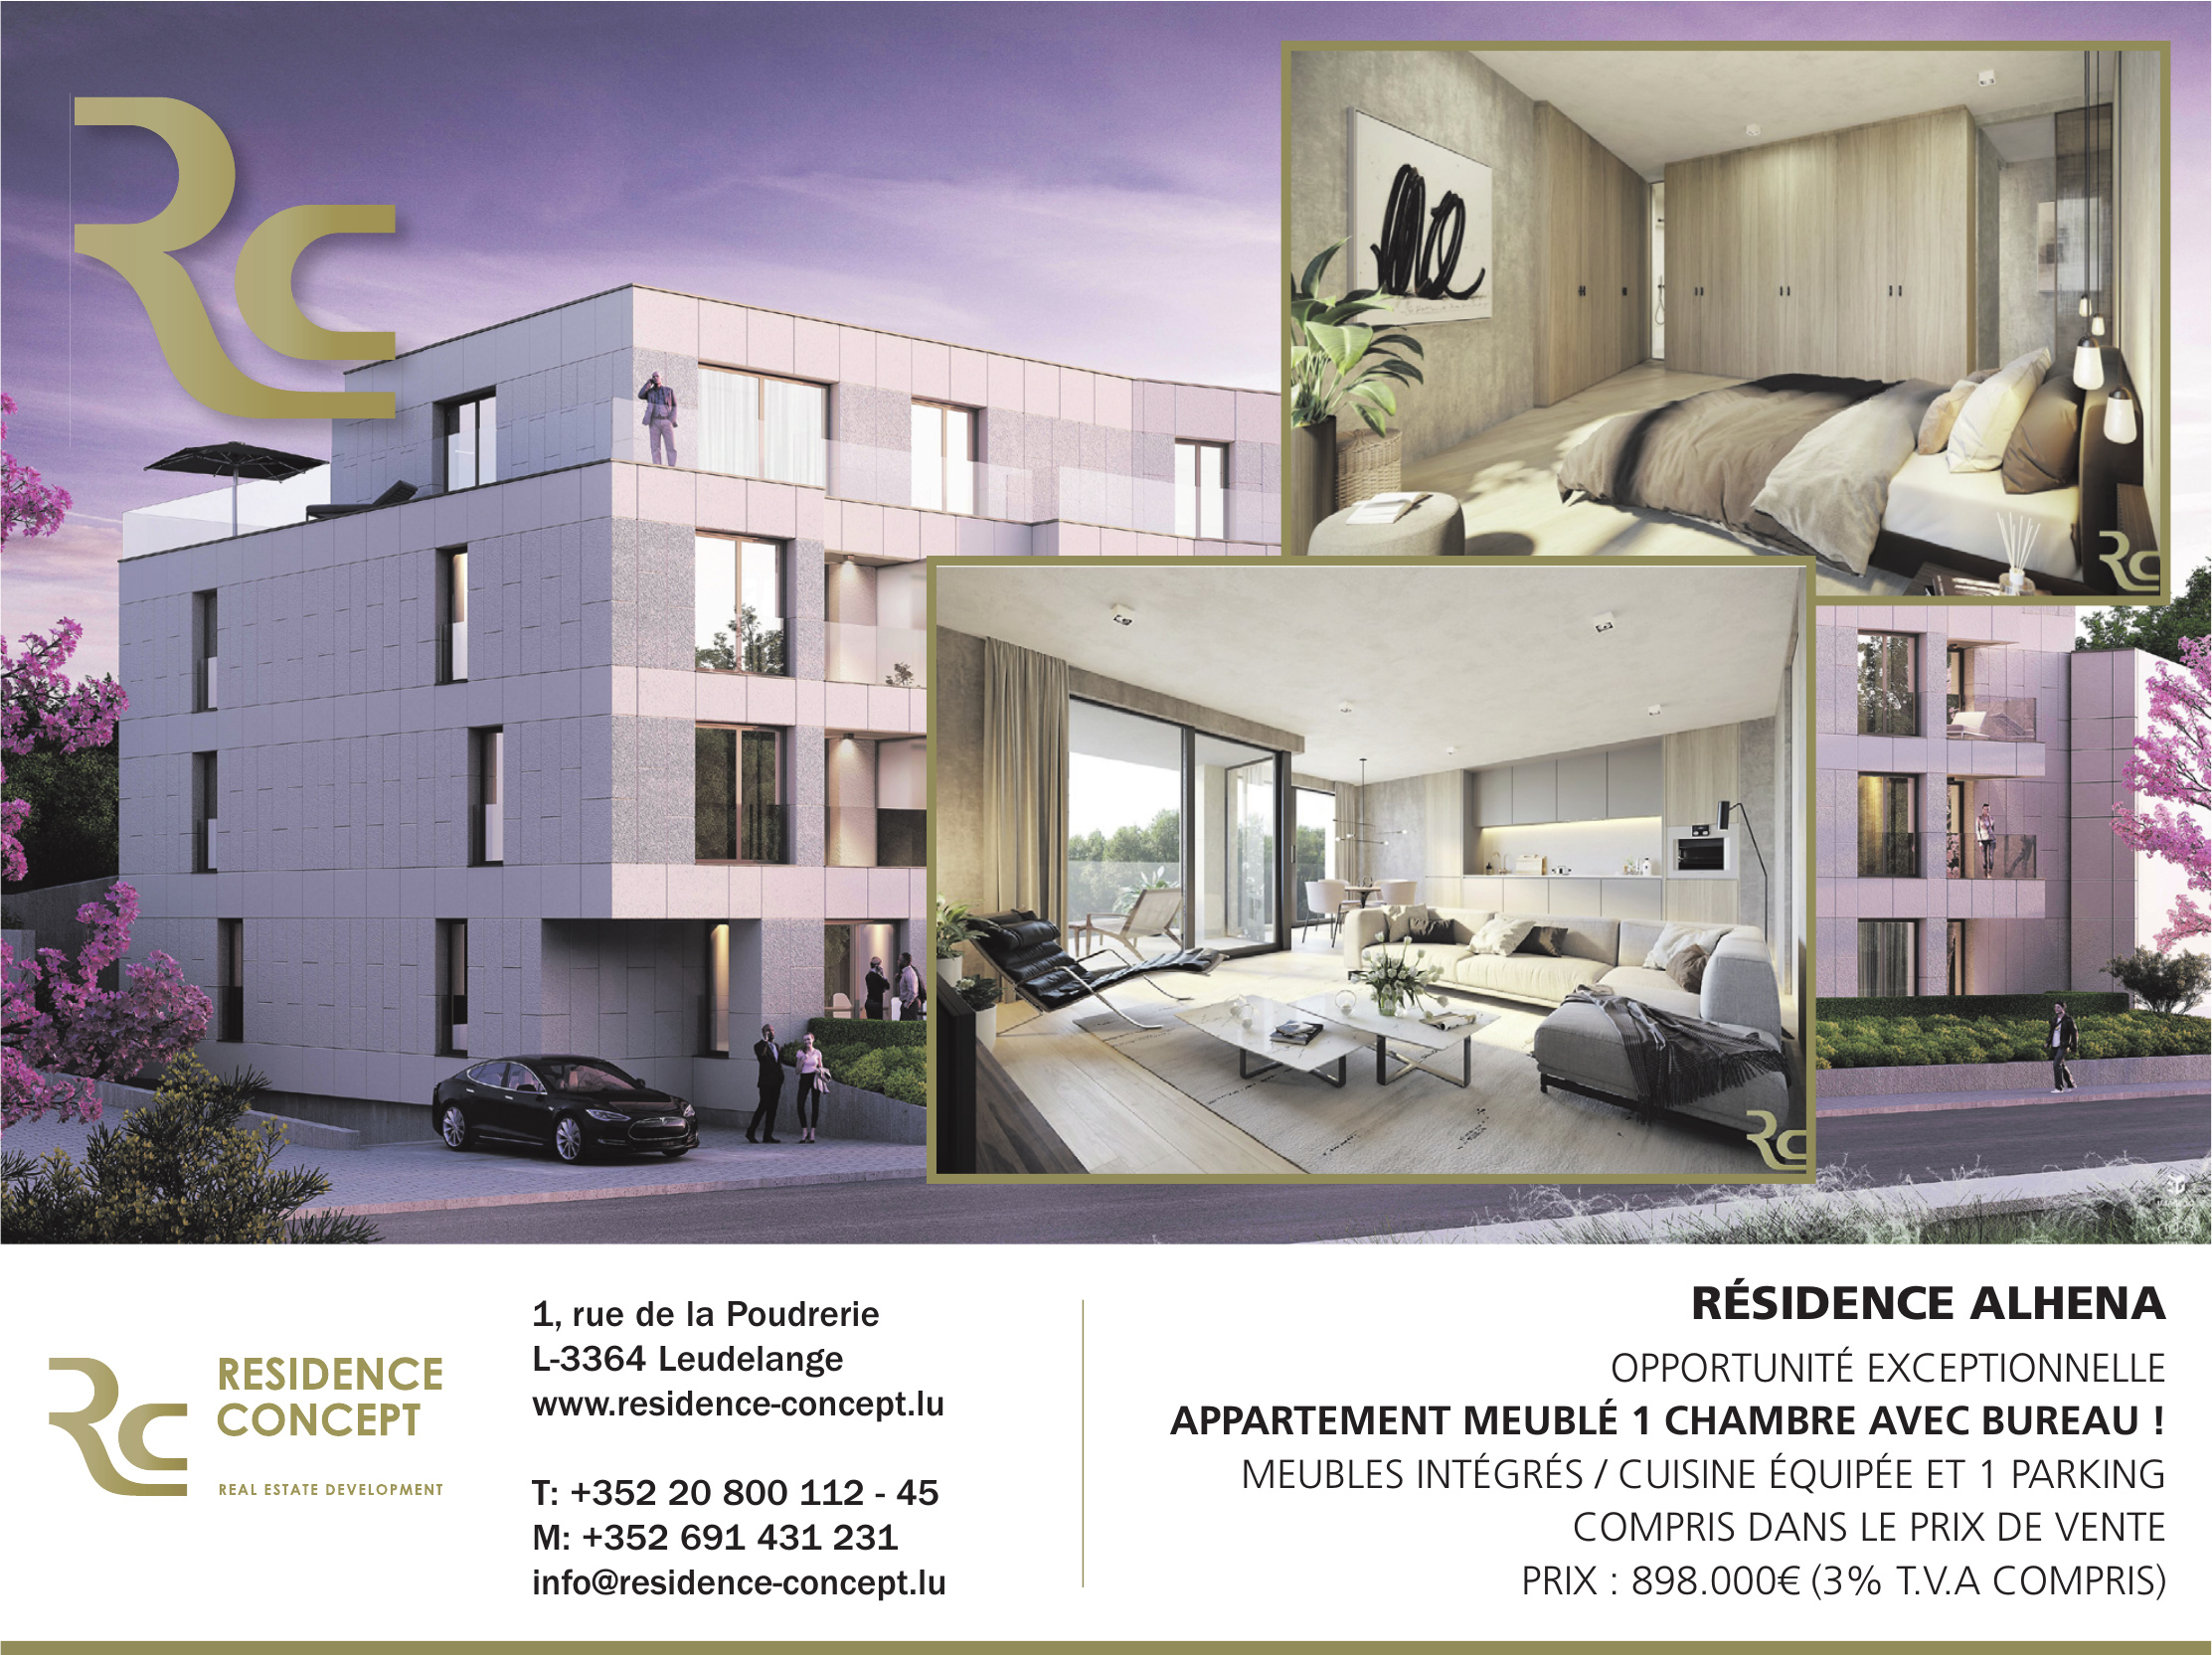 Residence Concept